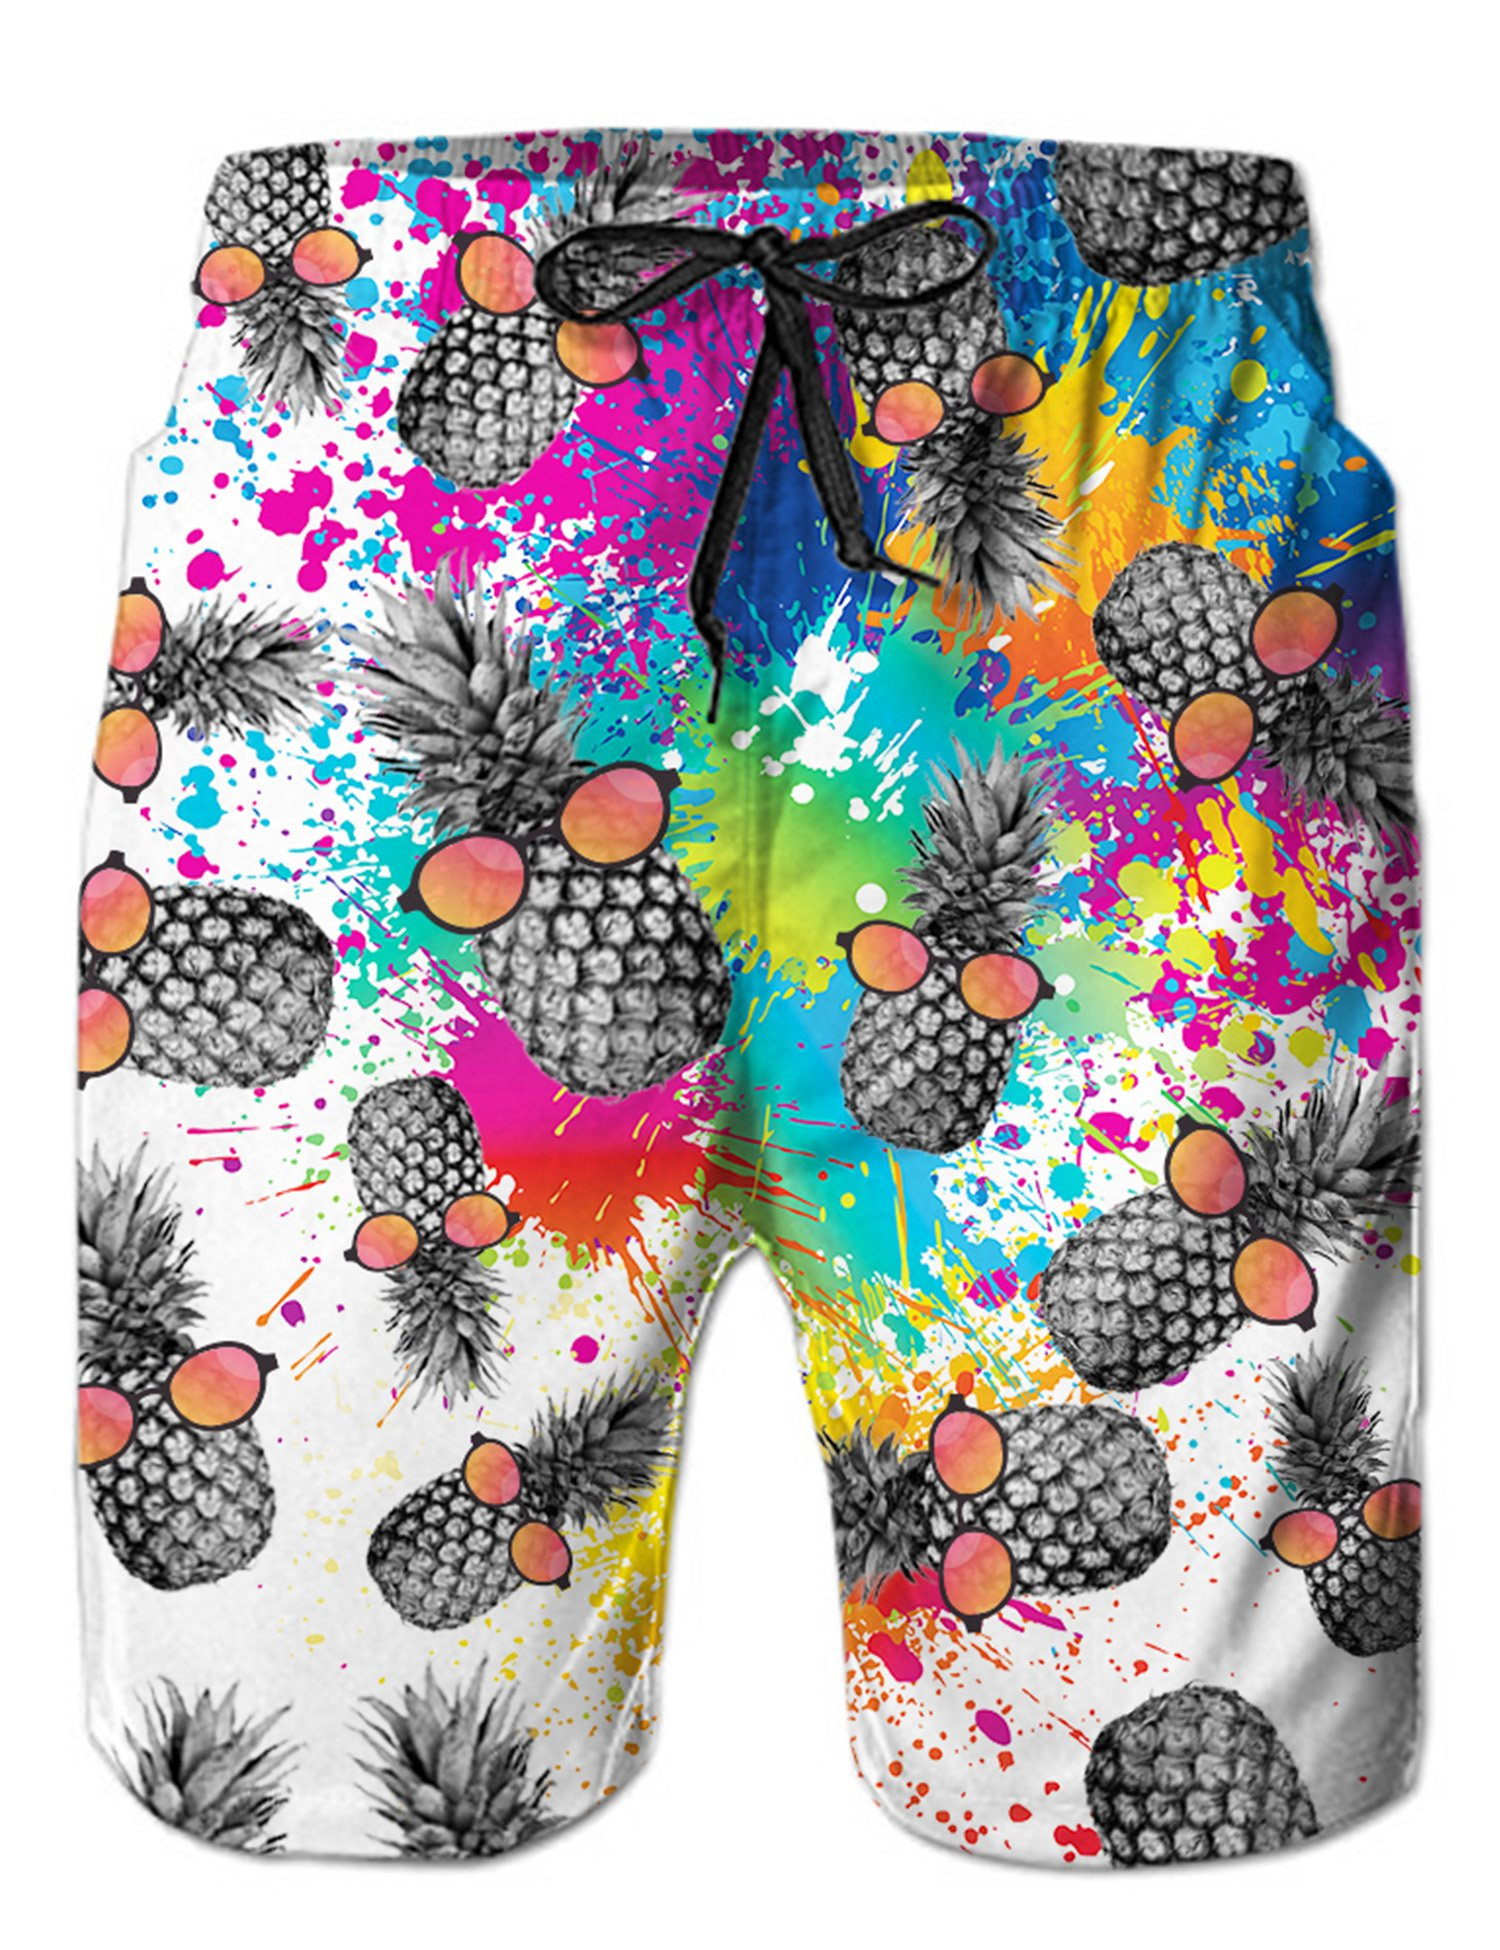 Loveternal Colorful Paint Splash Graphic Printed Mens Chubbies Swimming Trunks Soft Summer Beach Swim Shorts M